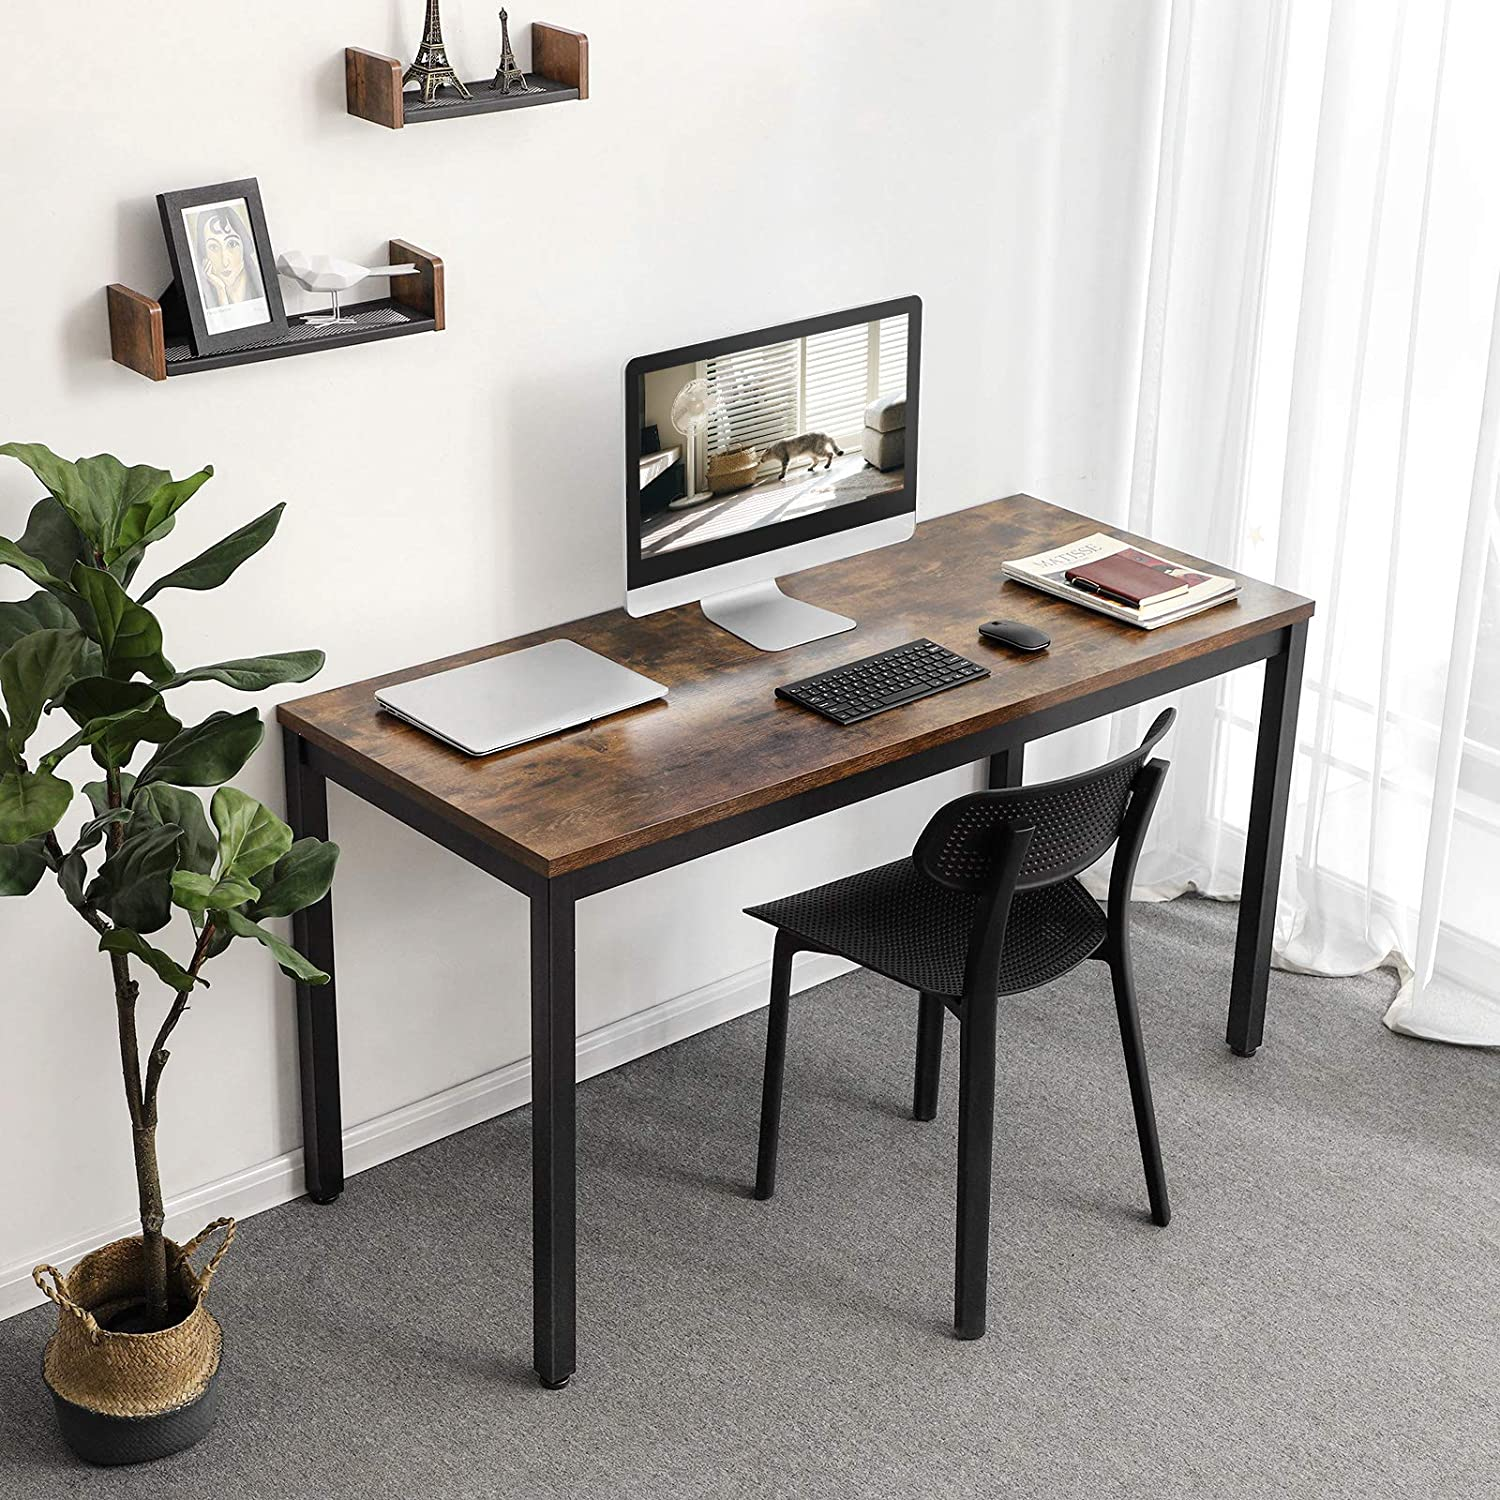 VASAGLE Industrial Computer Writing Desk, 55 Office Study Desk for Laptops, Table for Office Study Living Room, Sturdy Metal Frame, Easy to Assemble, Rustic Brown ULWD57X